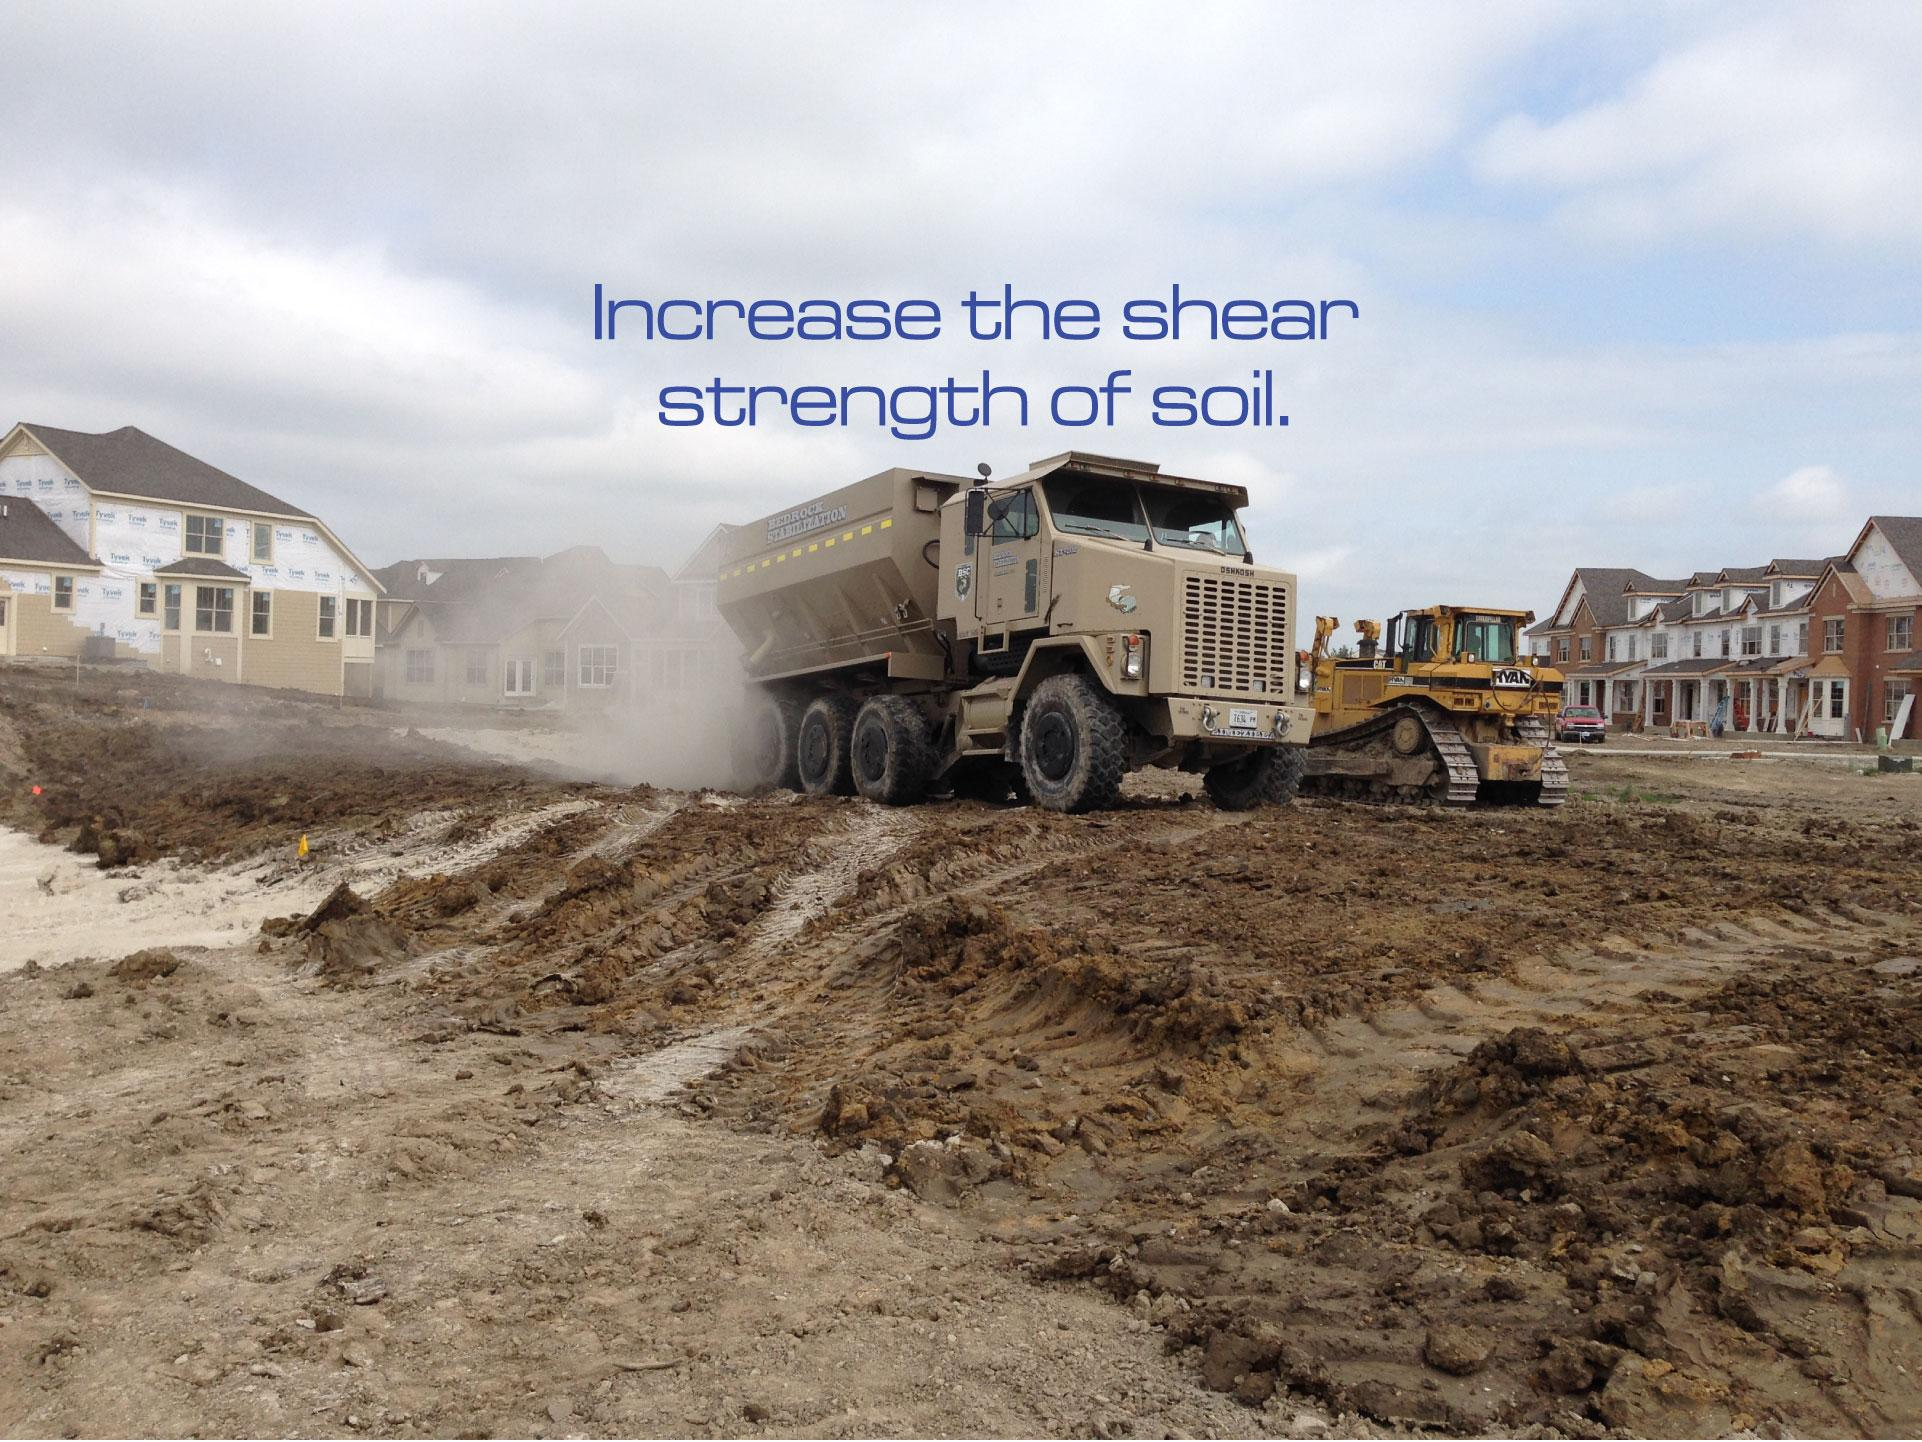 Increase shear strength